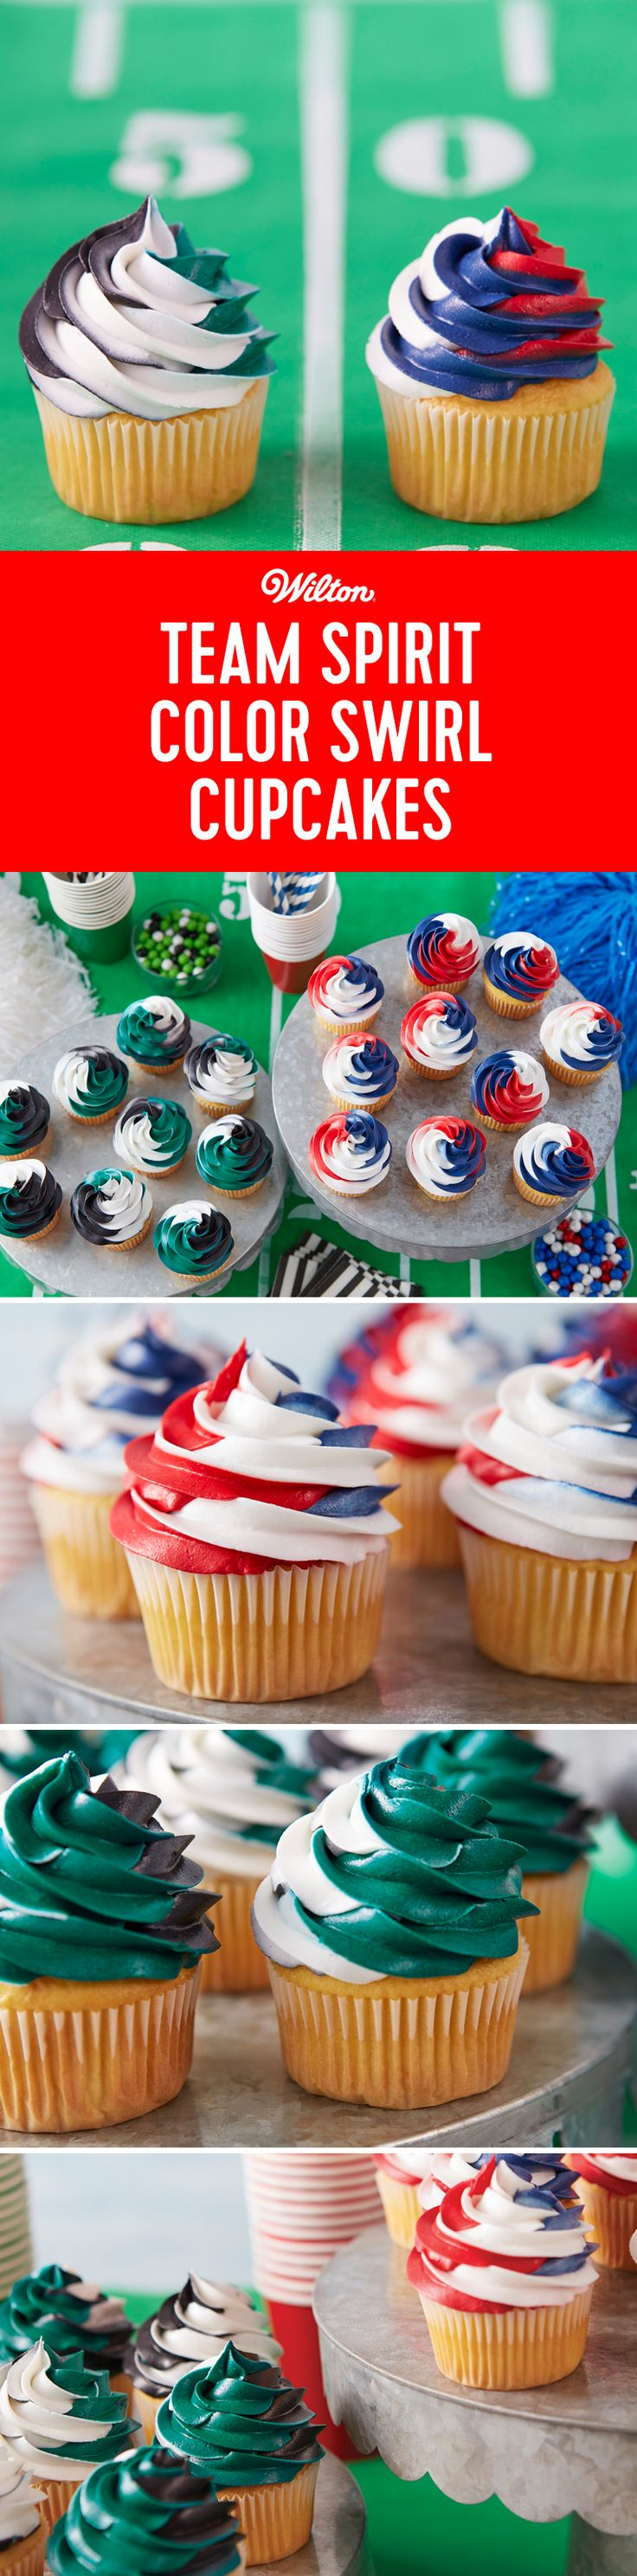 Show off your team spirit with these Color Swirl Cupcakes! Use any 3 colors of your choosing for a fun way to show off your team pride! Great for game day, homecoming celebrations, or any other party! #wiltoncakes #cupcakes #colorswirl #buttercream #cupcakeideas #gameday #tailgating #dessert #treats